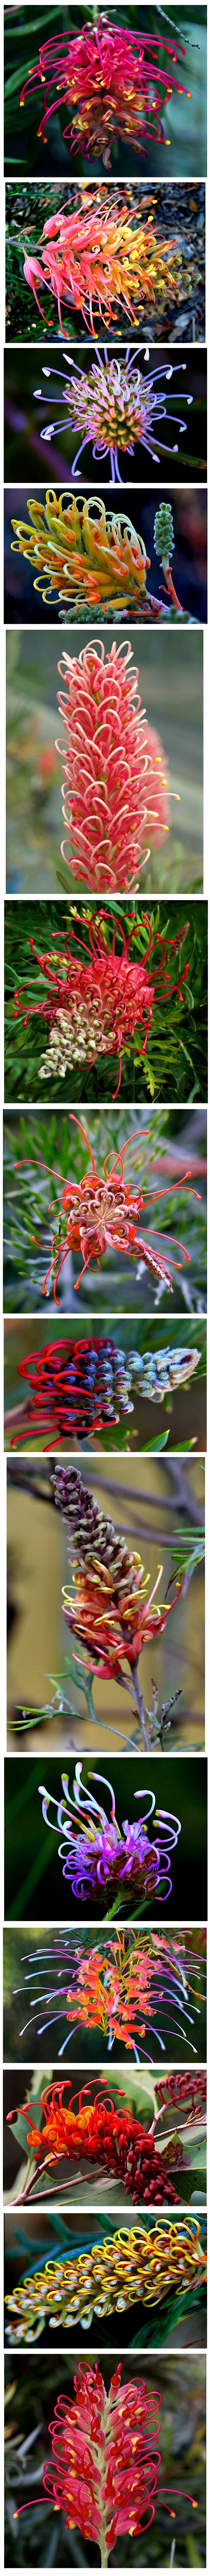 http://UpCycle.Club UpCycle Nature presents Grevillea sp. My favourite Australian flowering shrub @upcycleclub